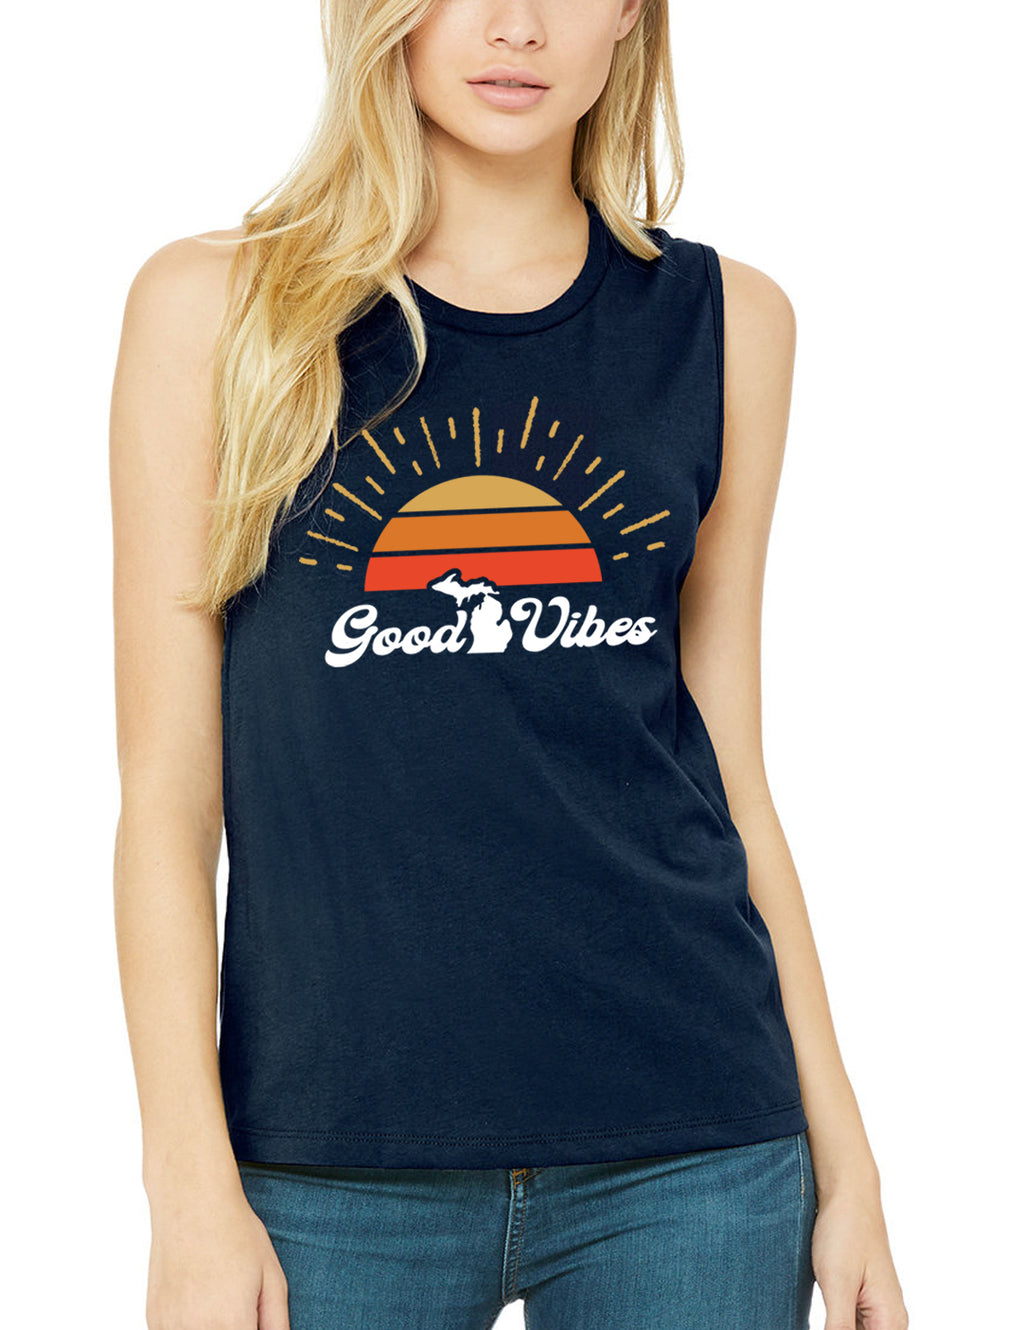 Good Vibes - Women's Muscle Tank - Navy